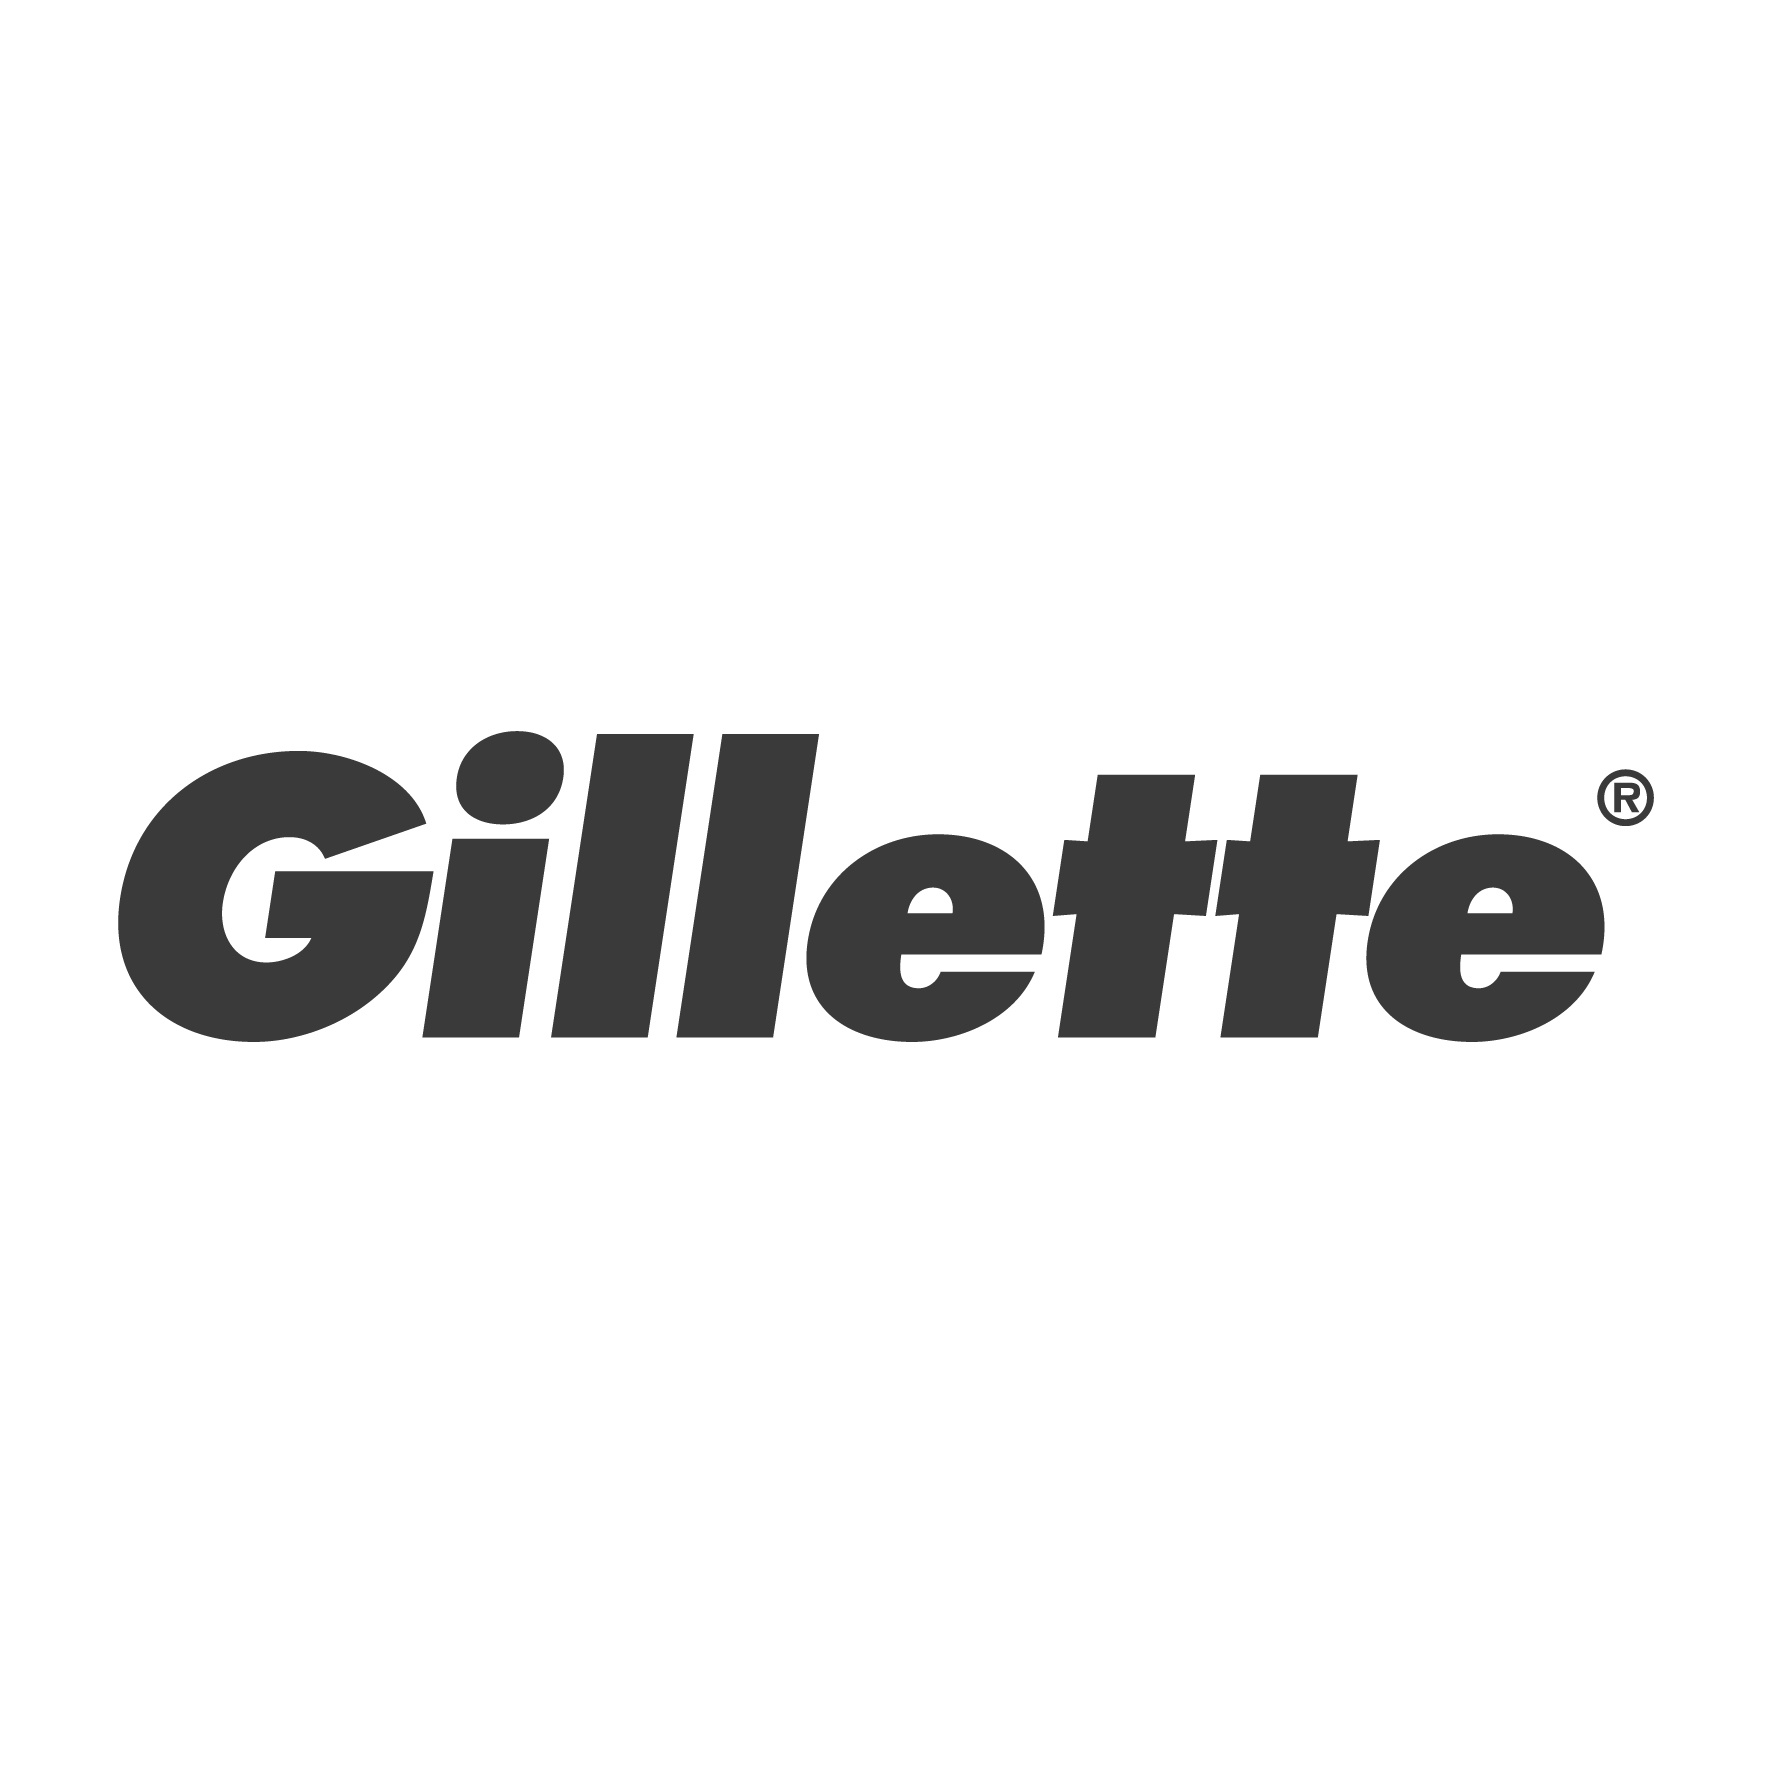 gillette marketing in spain essay Marketing and promotion venture for gillette in argentina (2014, may 11) retrieved february 15, 2018, from marketing and promotion venture for gillette in.